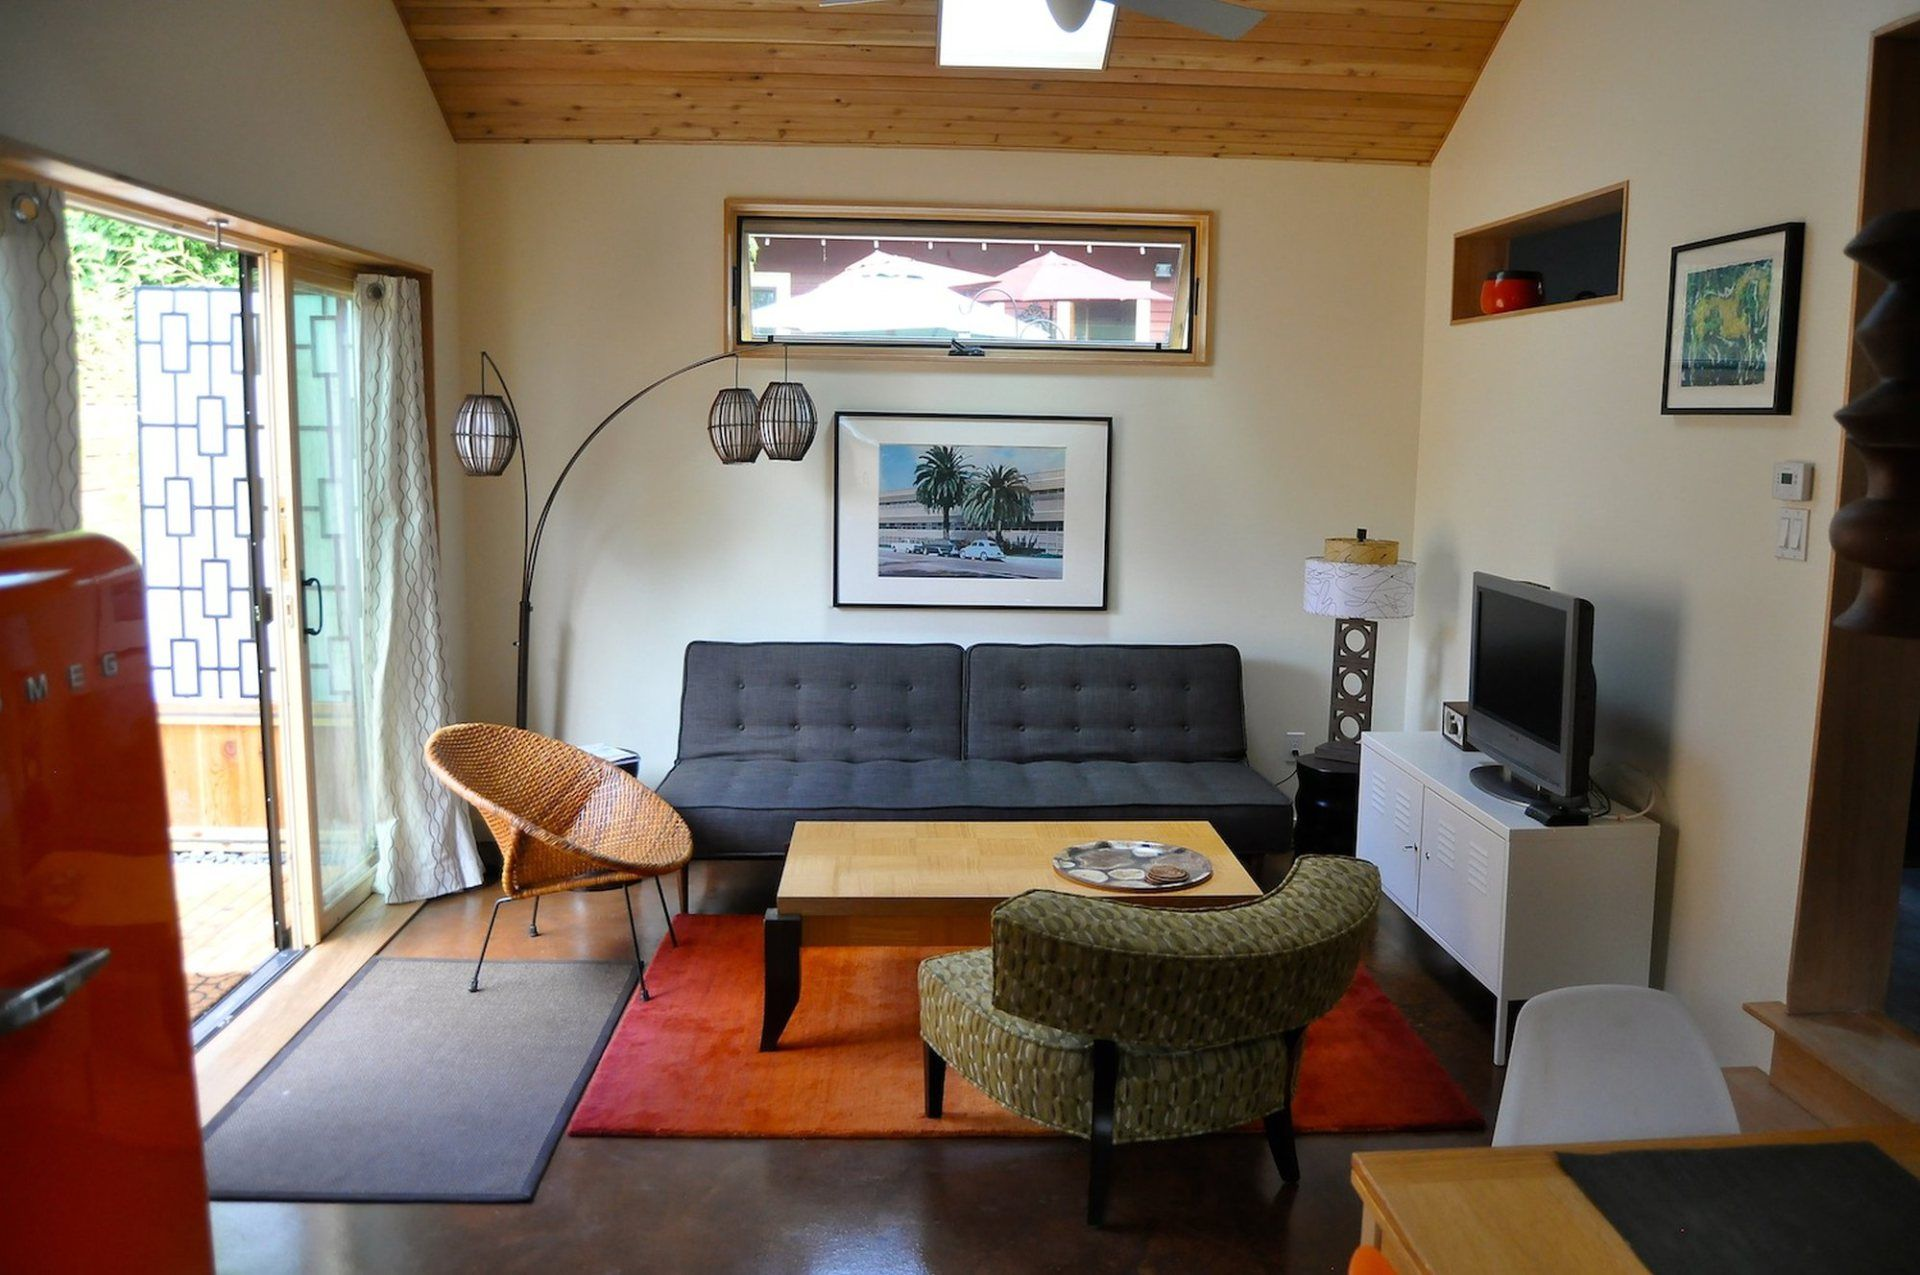 PDX Eco Cottage, a sustainably built Craftsmanstyle